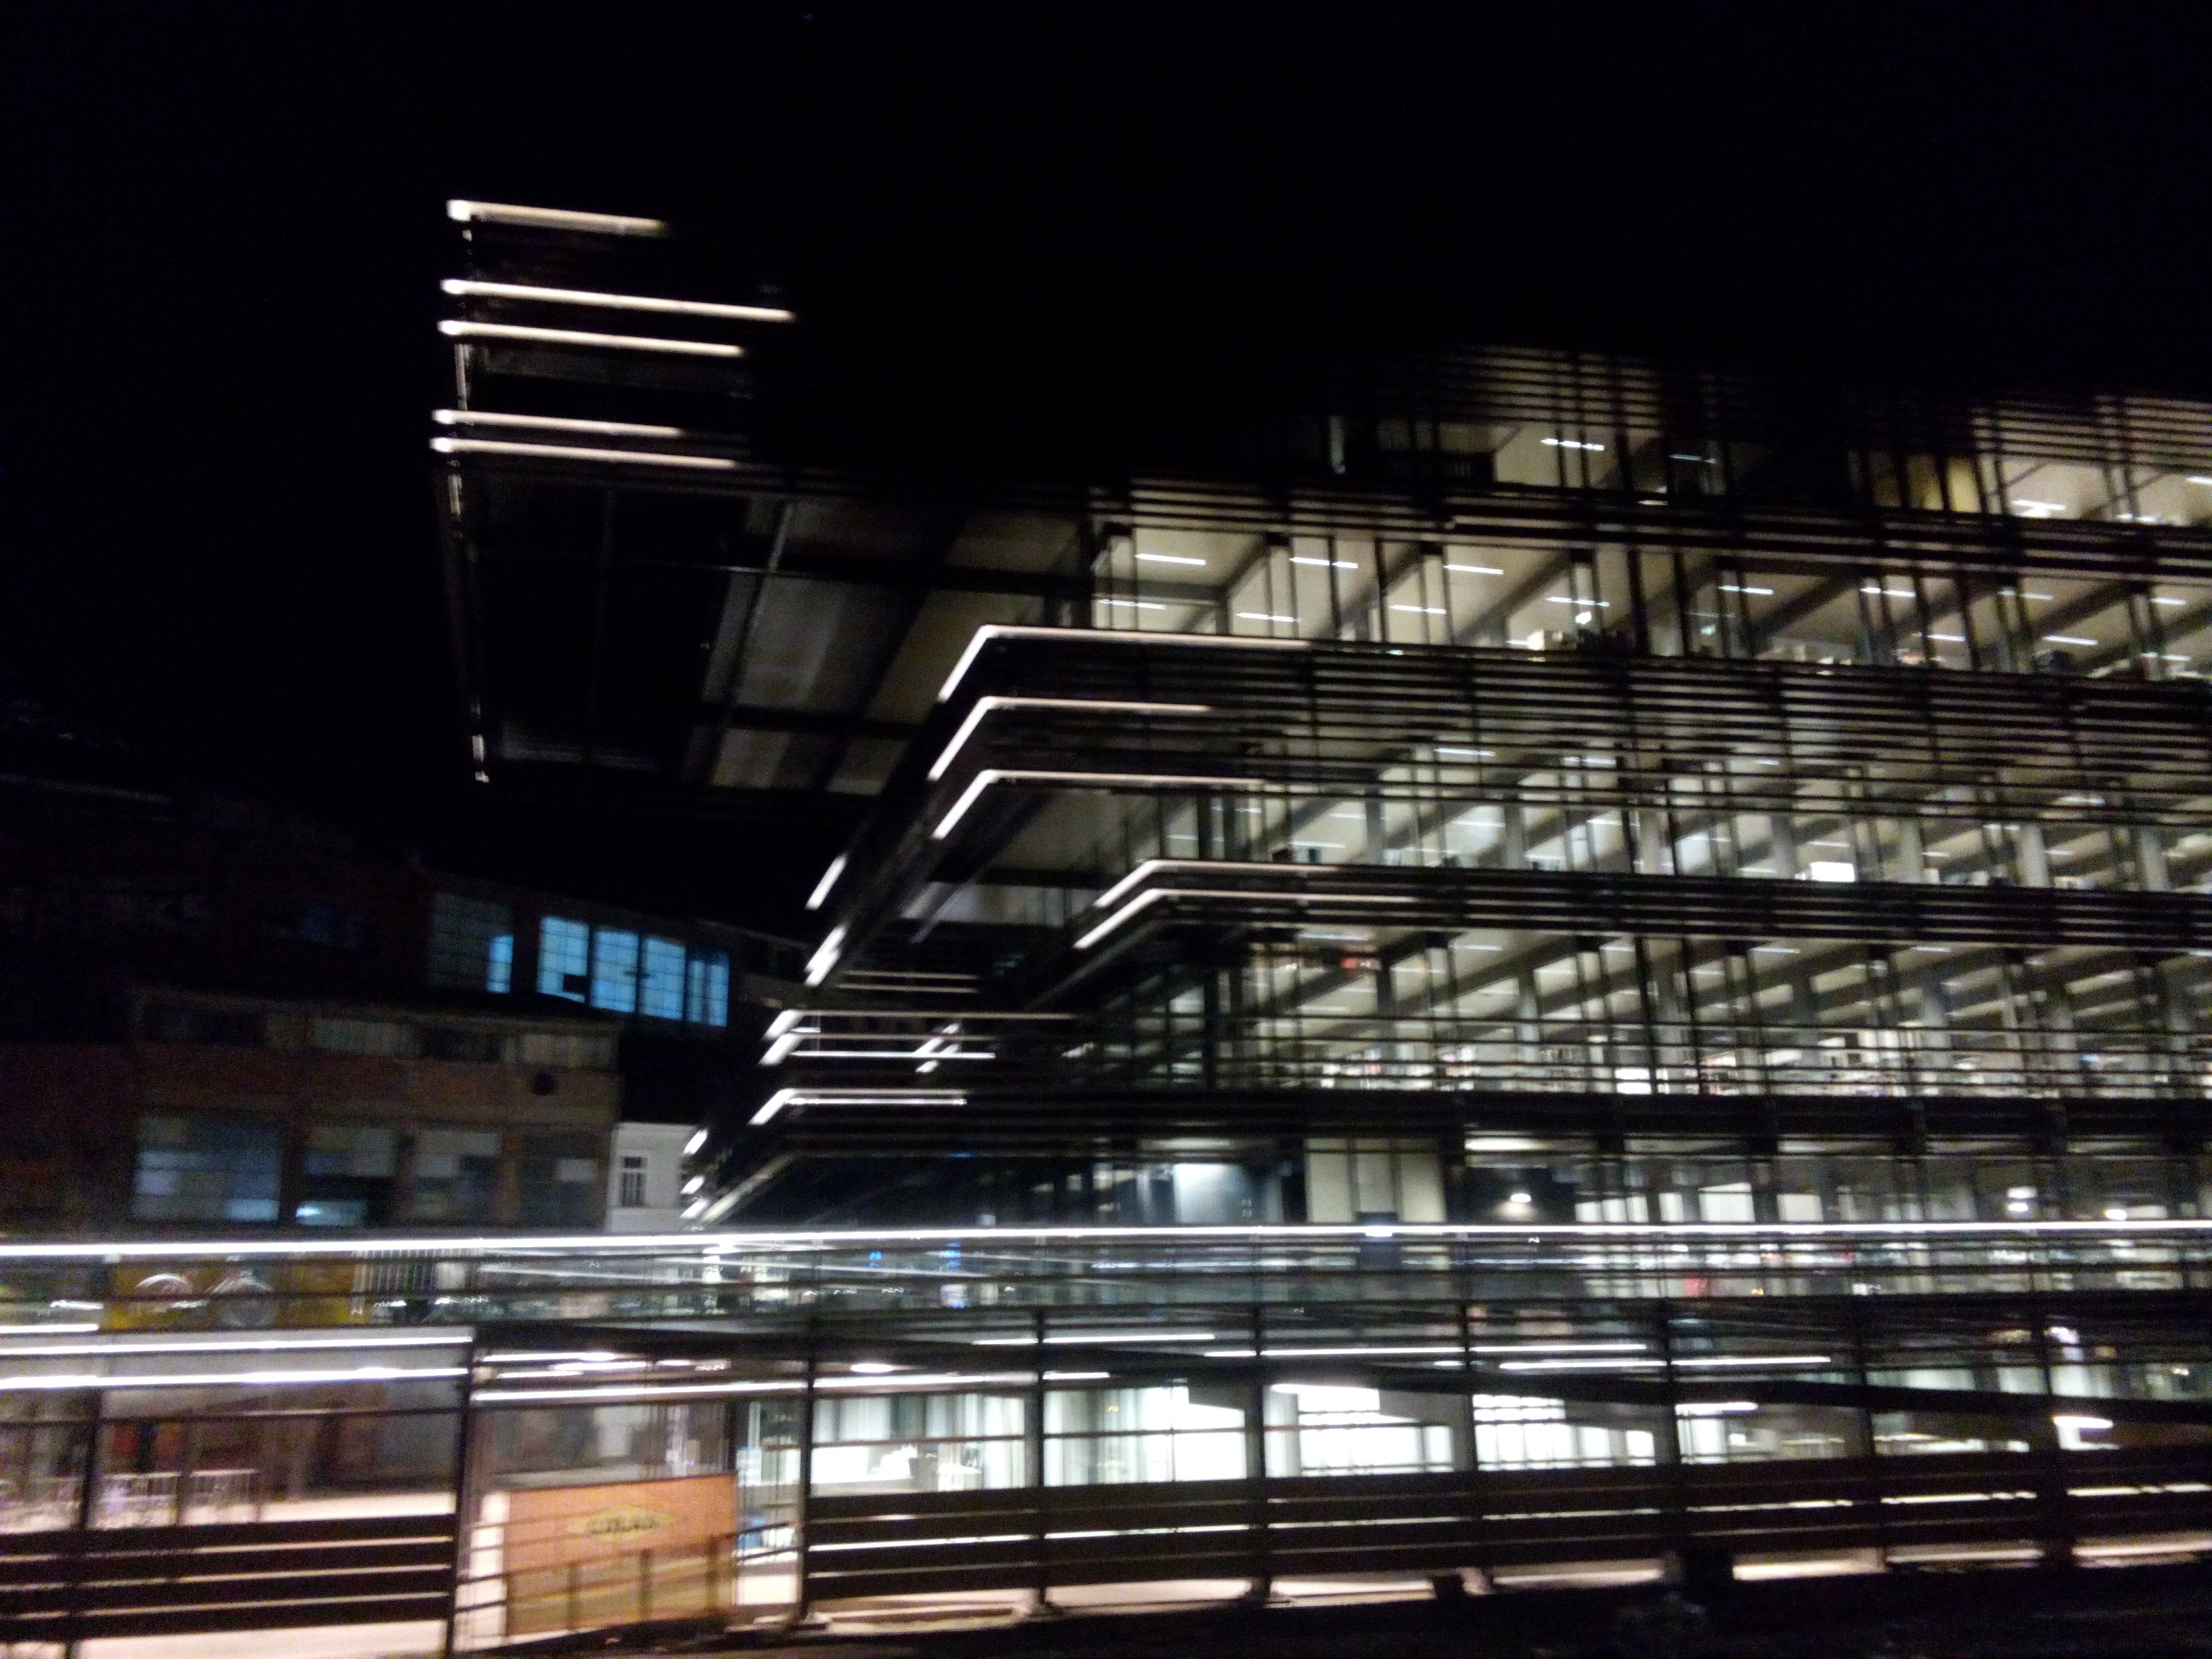 A geometric building in the dark, lit up with lights from inside